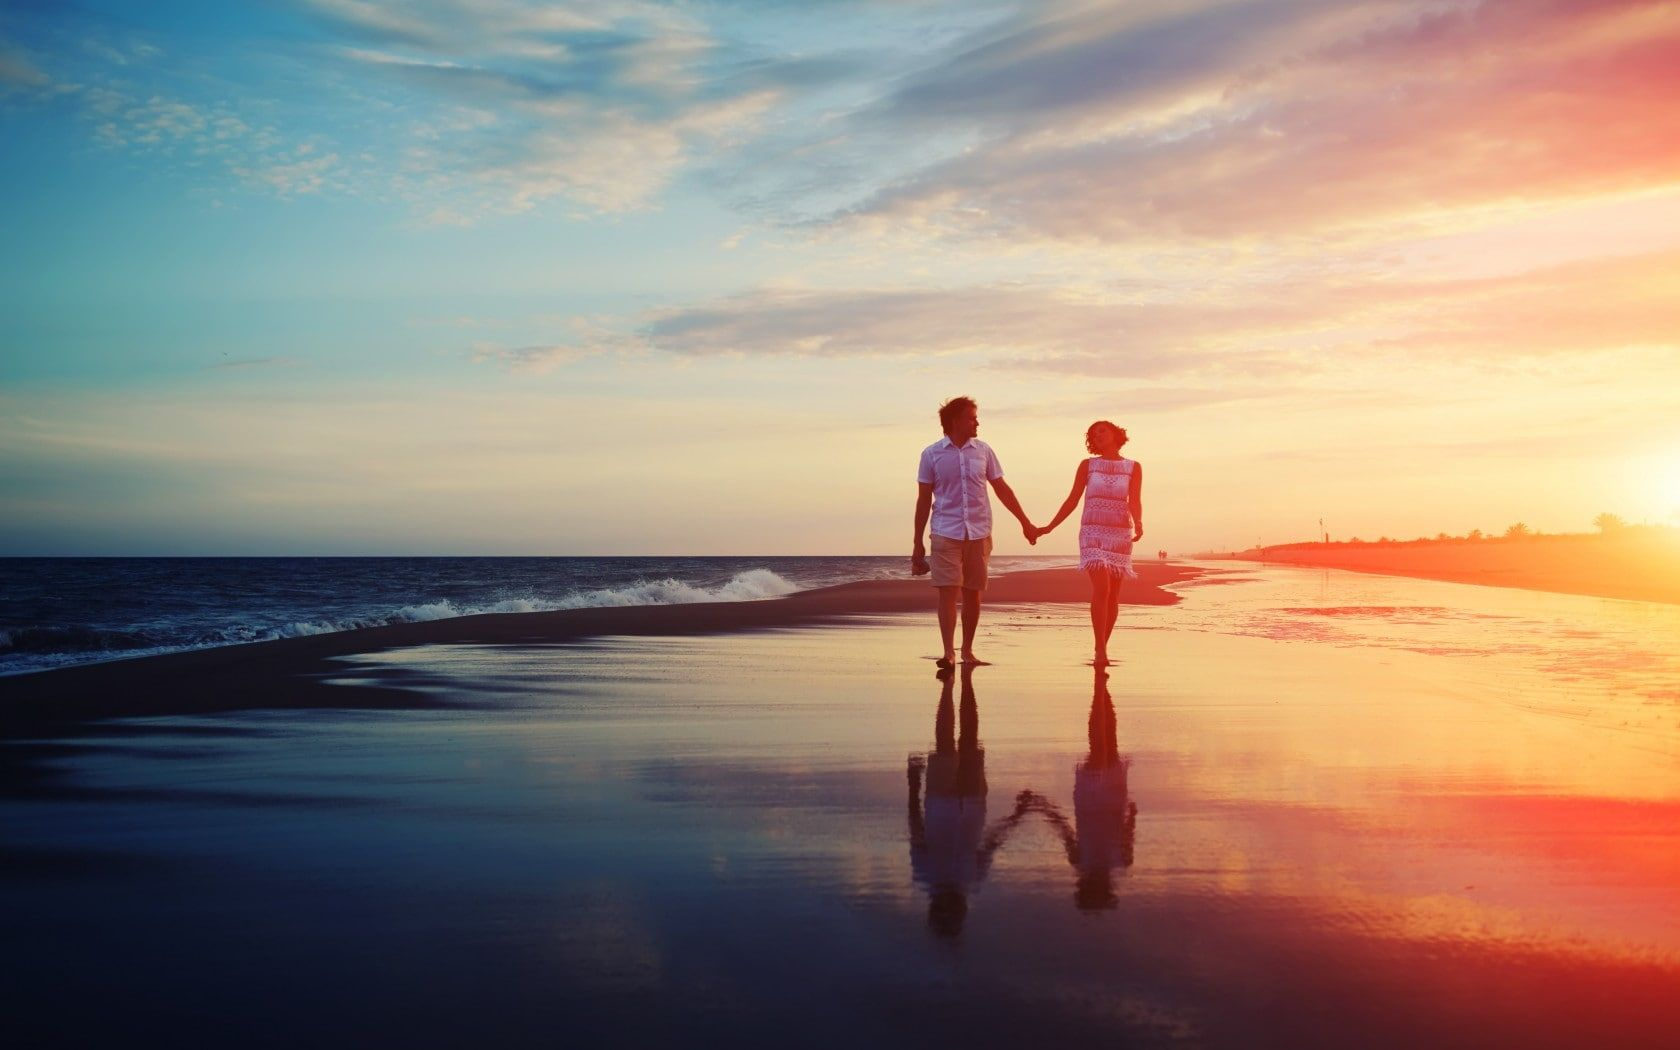 People Couples Sea Sunset Love Life Happiness Walking Photography Shadow Coupe Walking Along Sea Shore Und Sunset Couple Wallpaper Sunset Photography Couple walk in beach love wallpapers hd